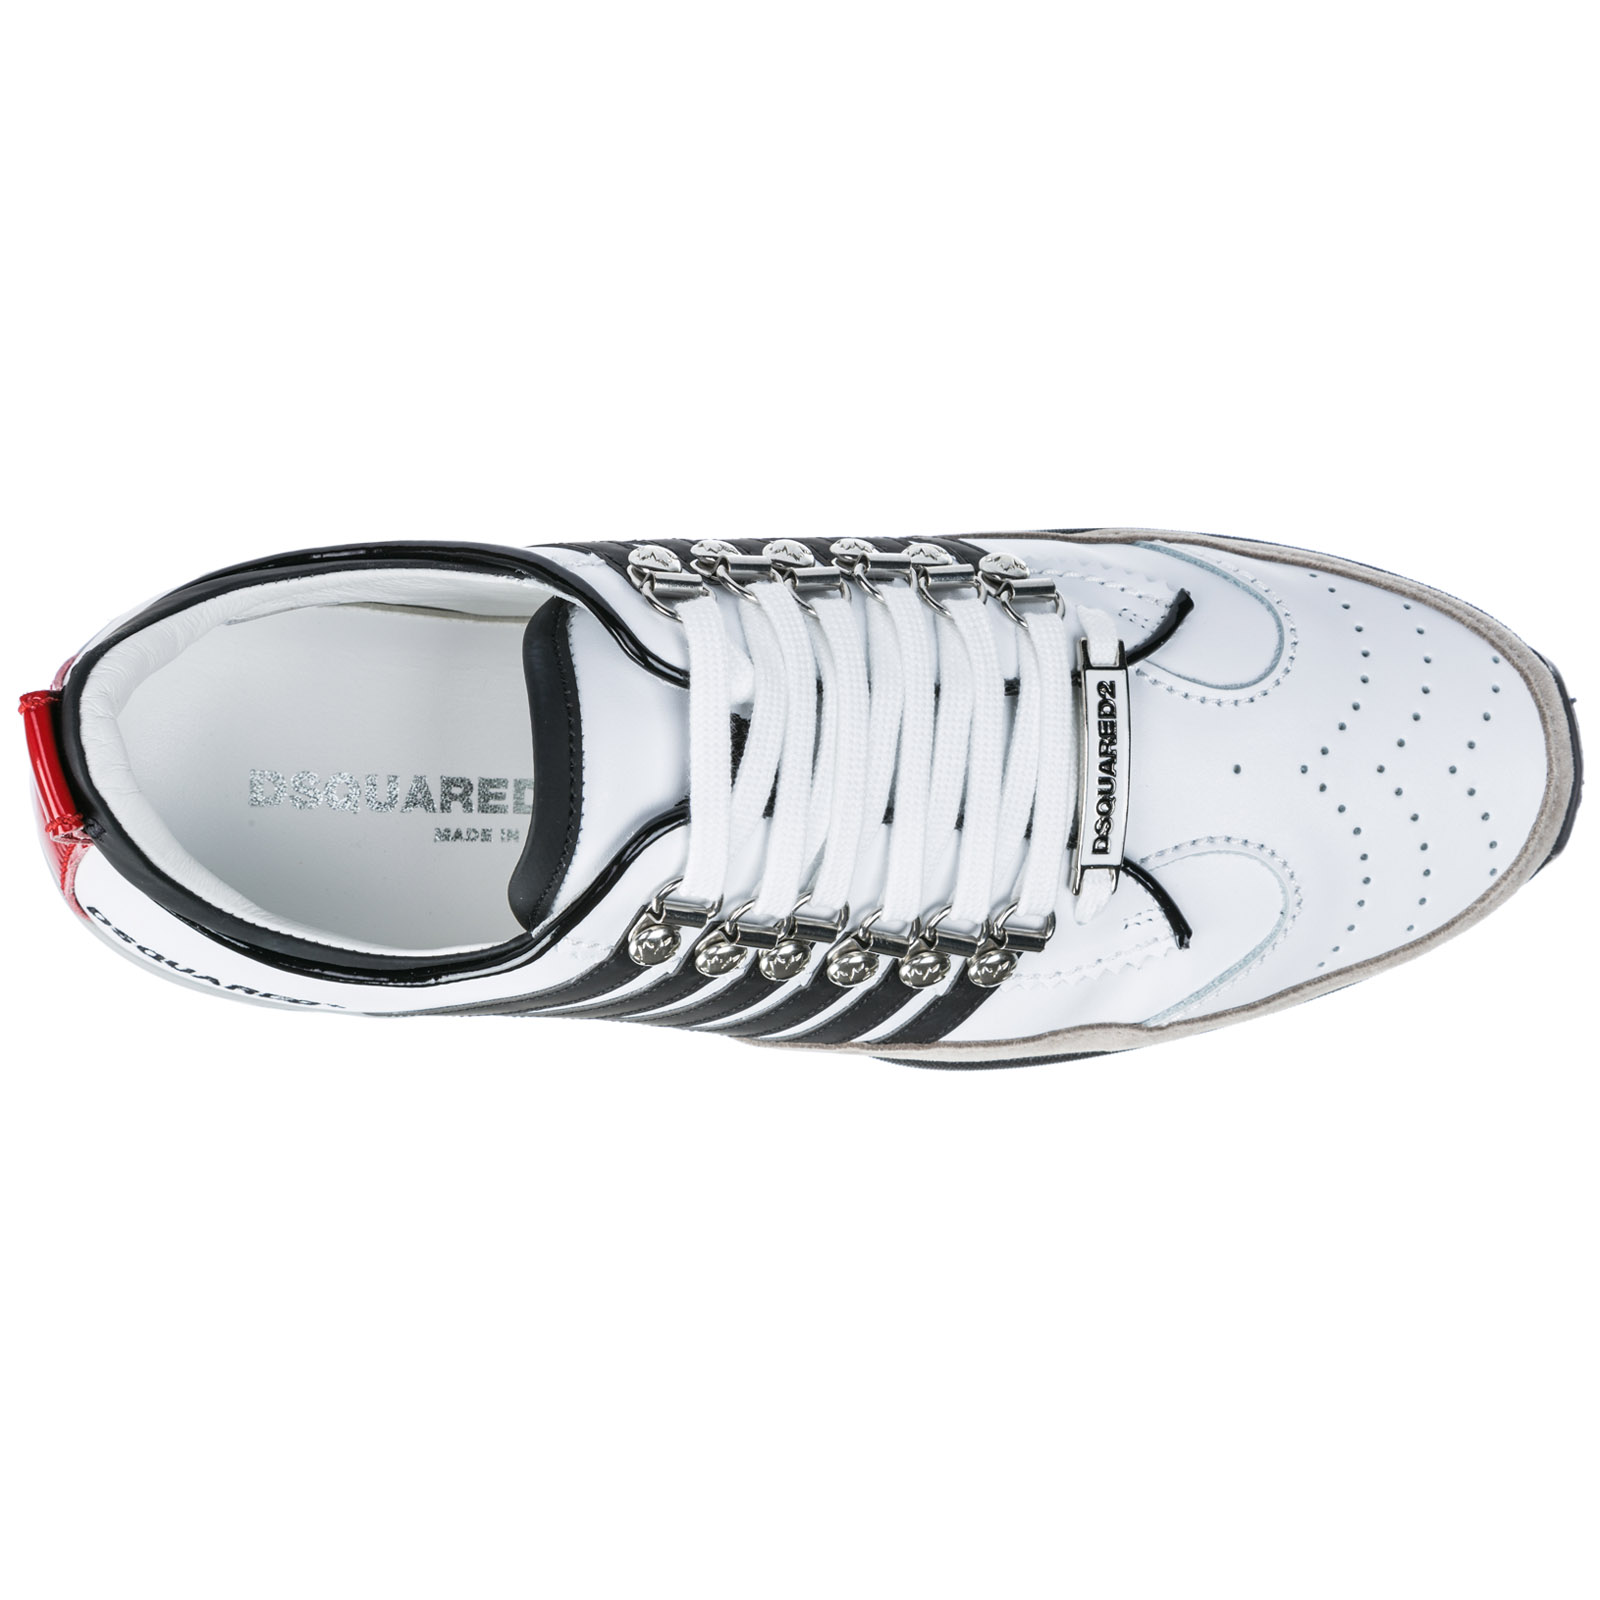 Men's shoes leather trainers sneakers 251